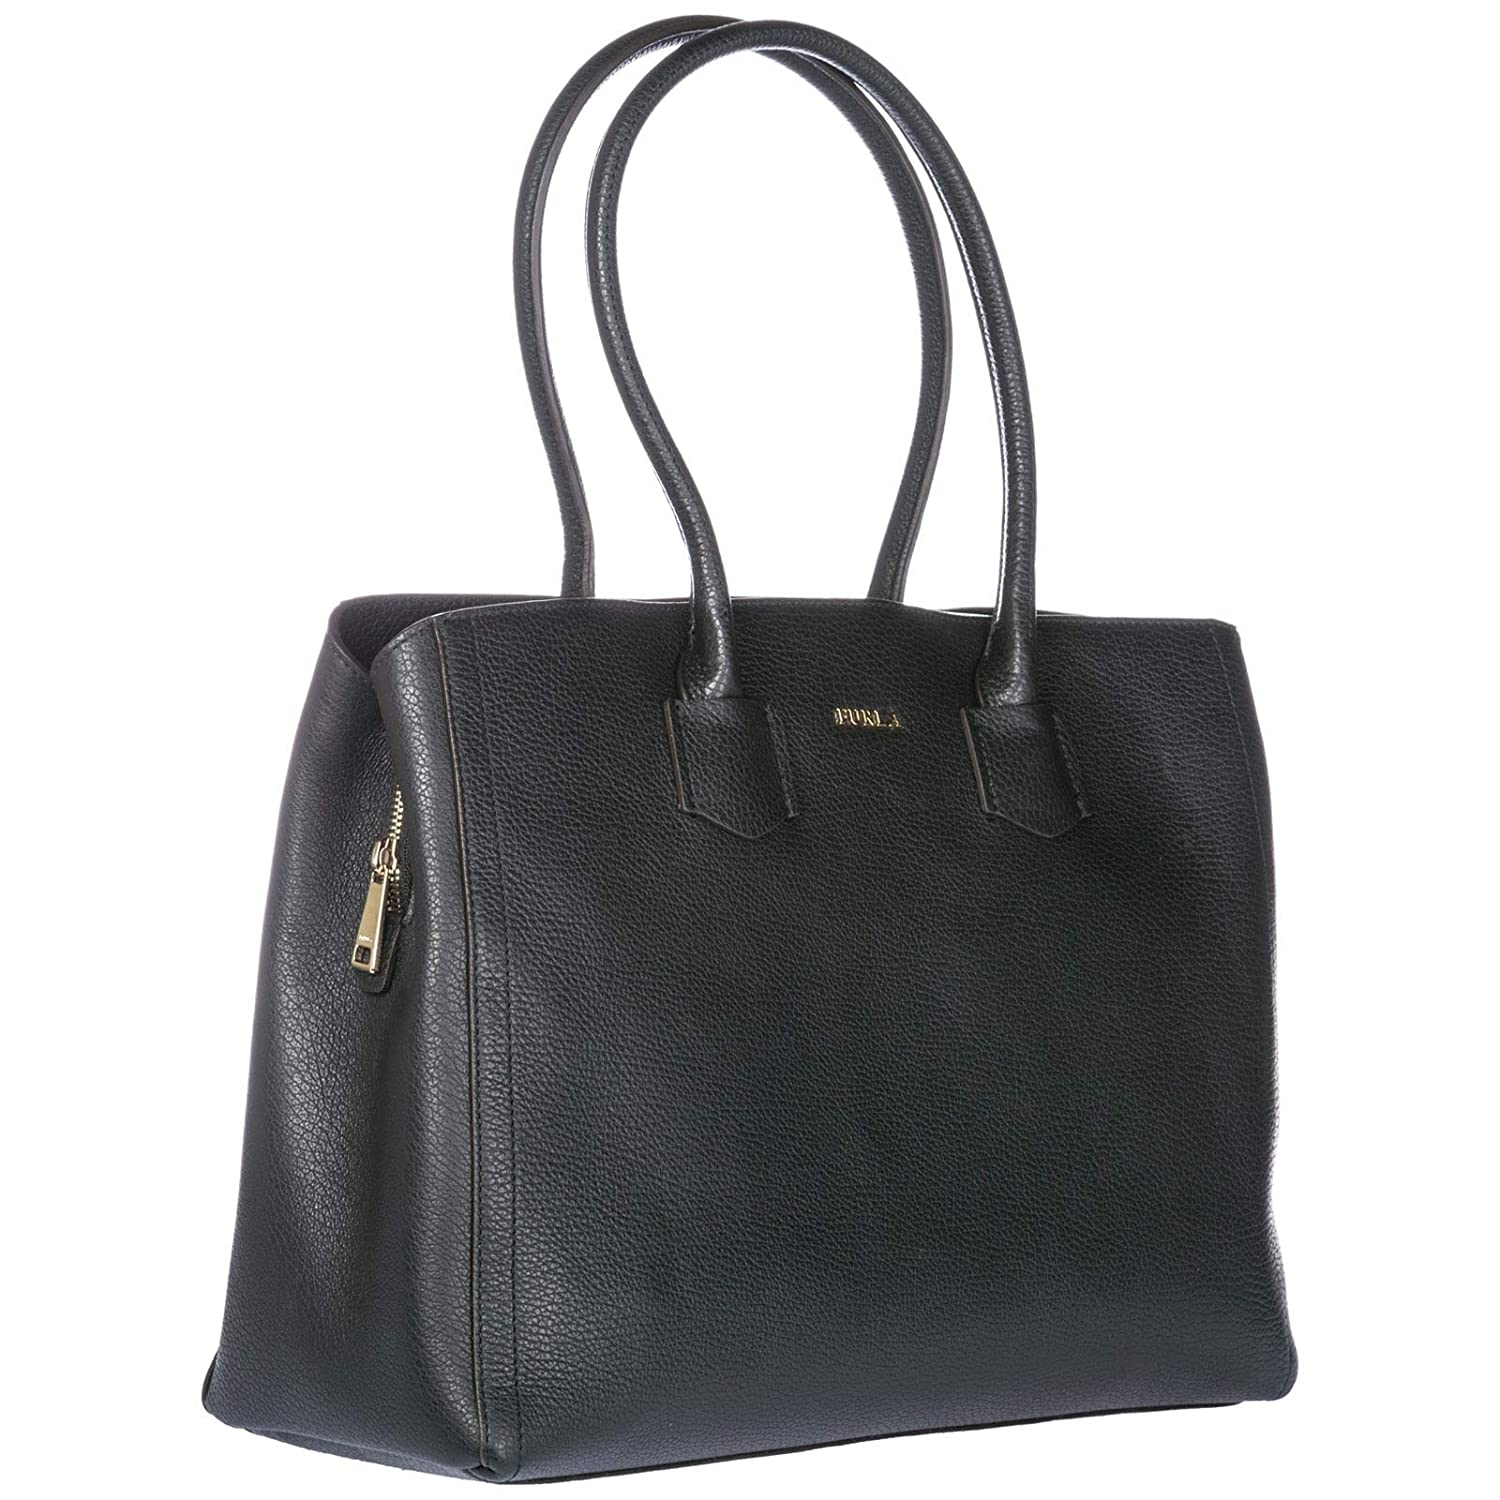 f4bccf9331 Amazon.com: Furla Women's Alba Large Tote Onyx One Size: Shoes